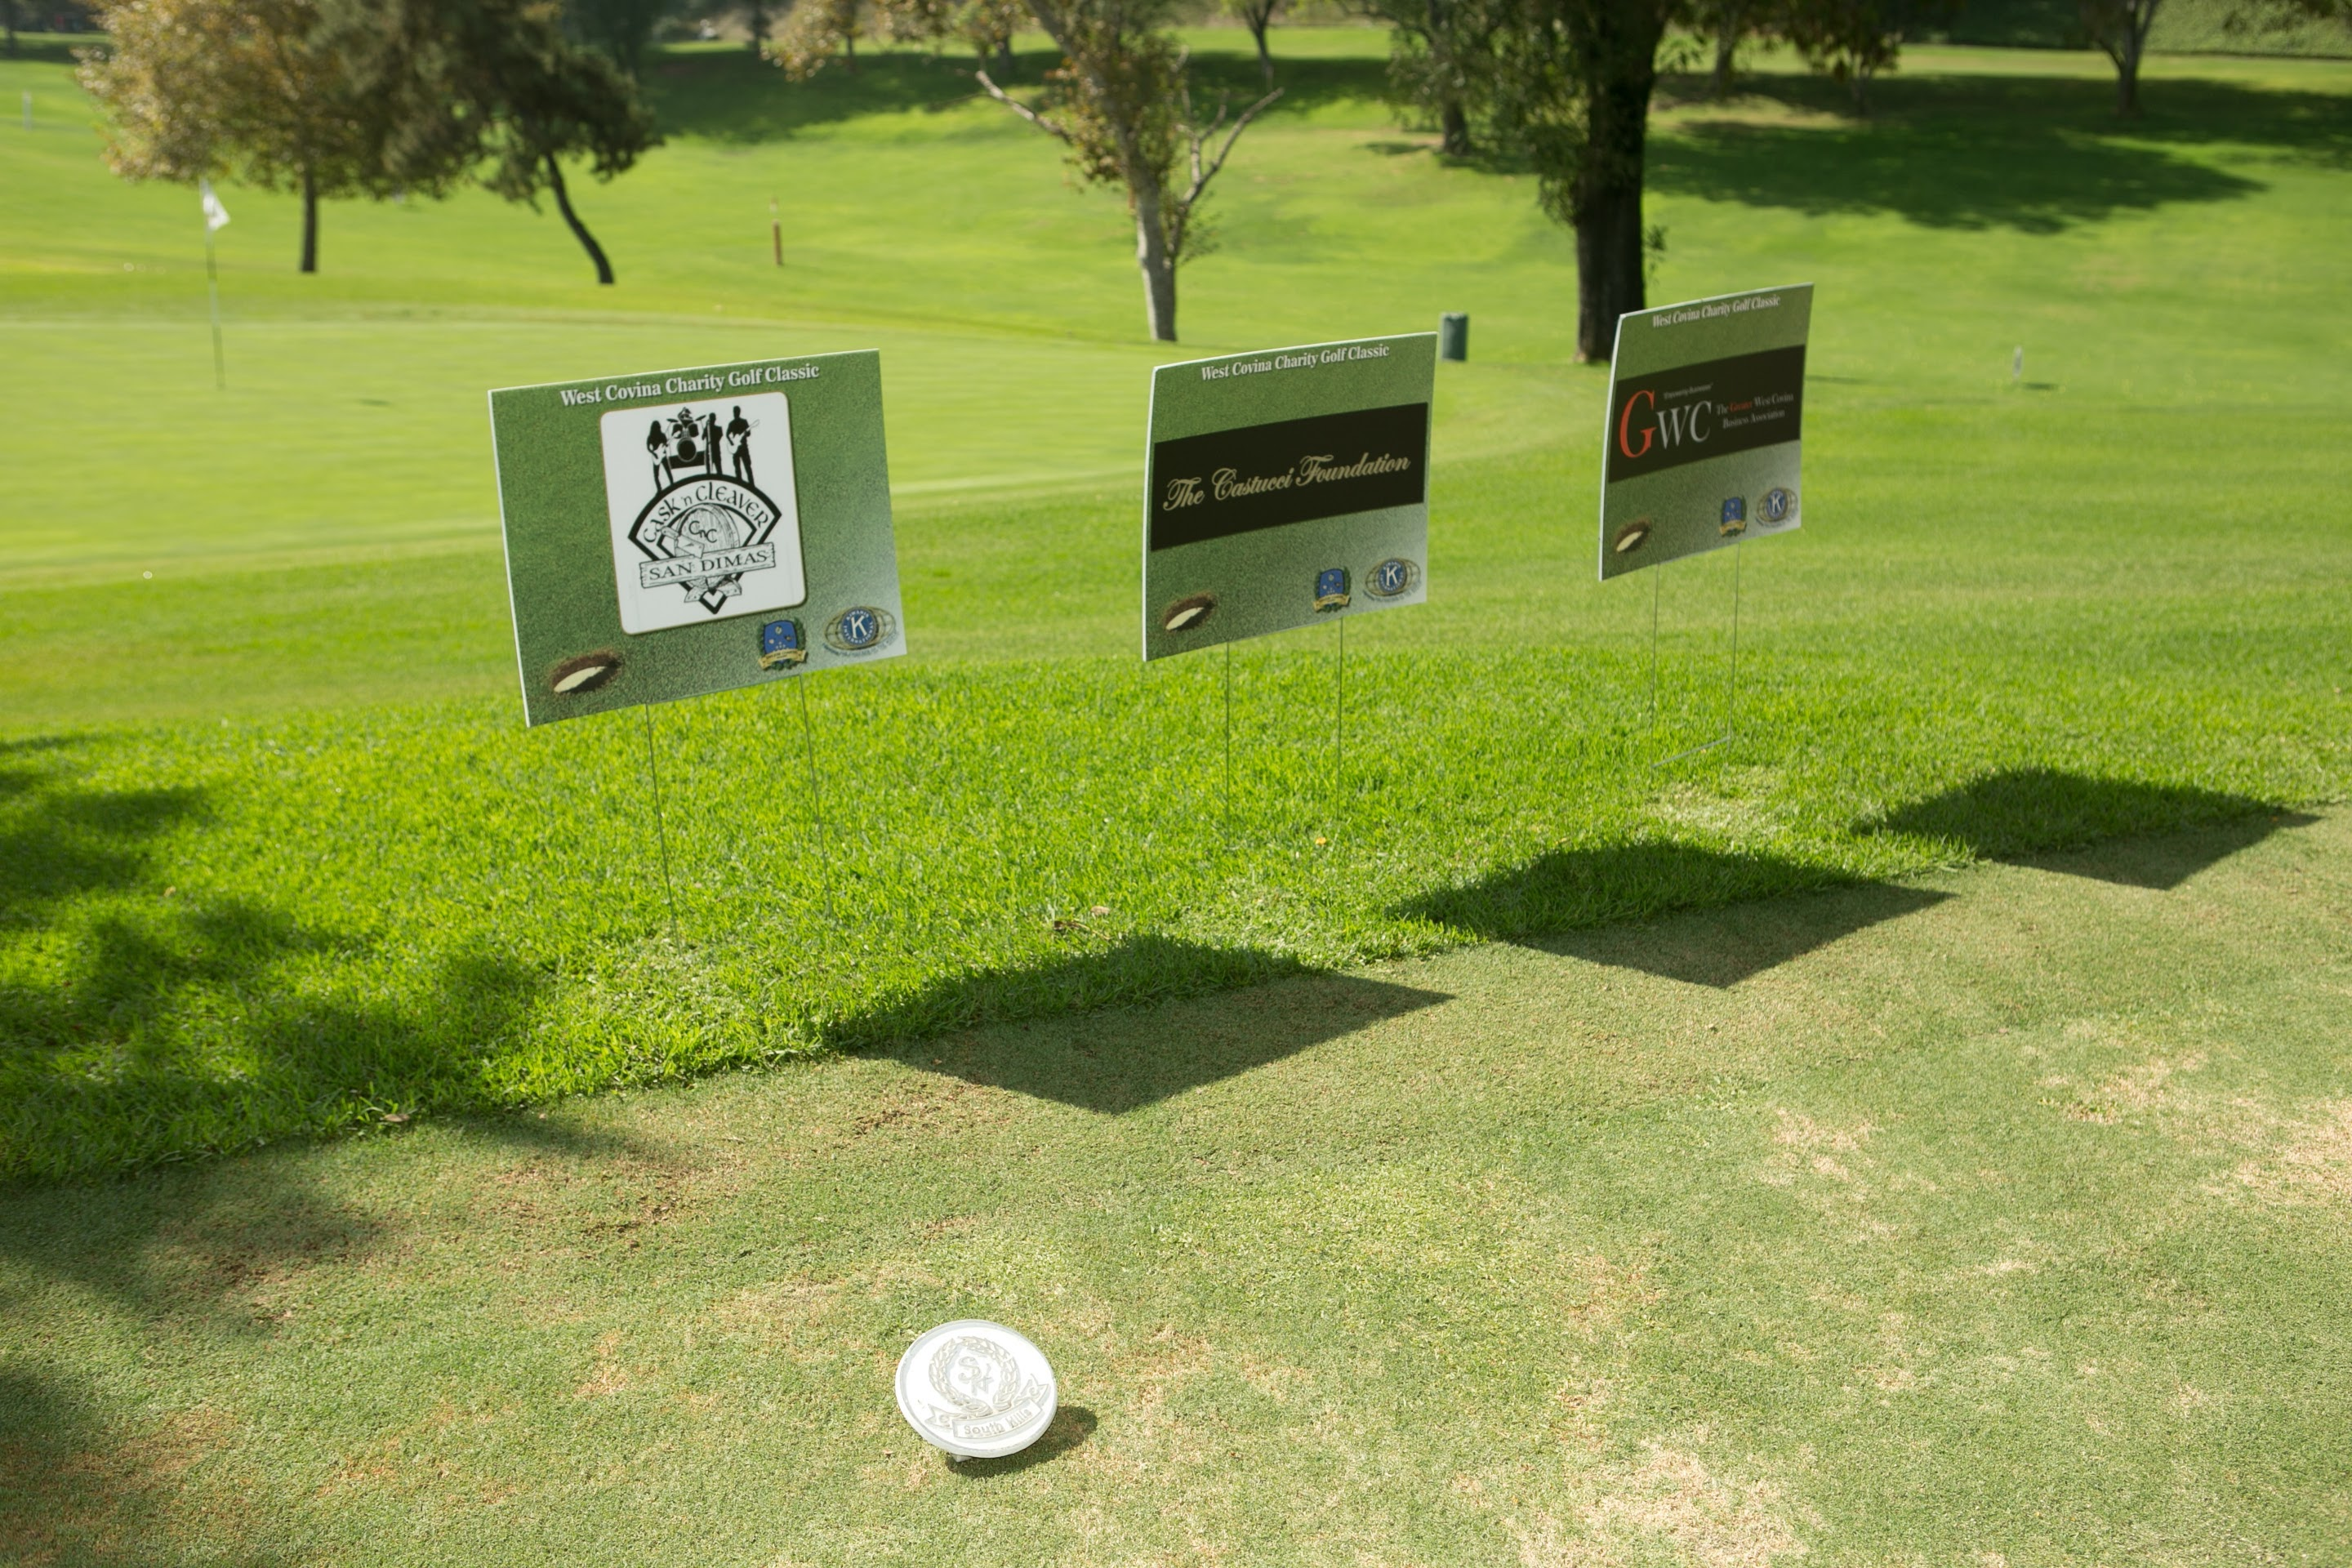 2019 West Covina Kiwanis Charity Golf Classic - Default Image of Tee Sign Sponsor